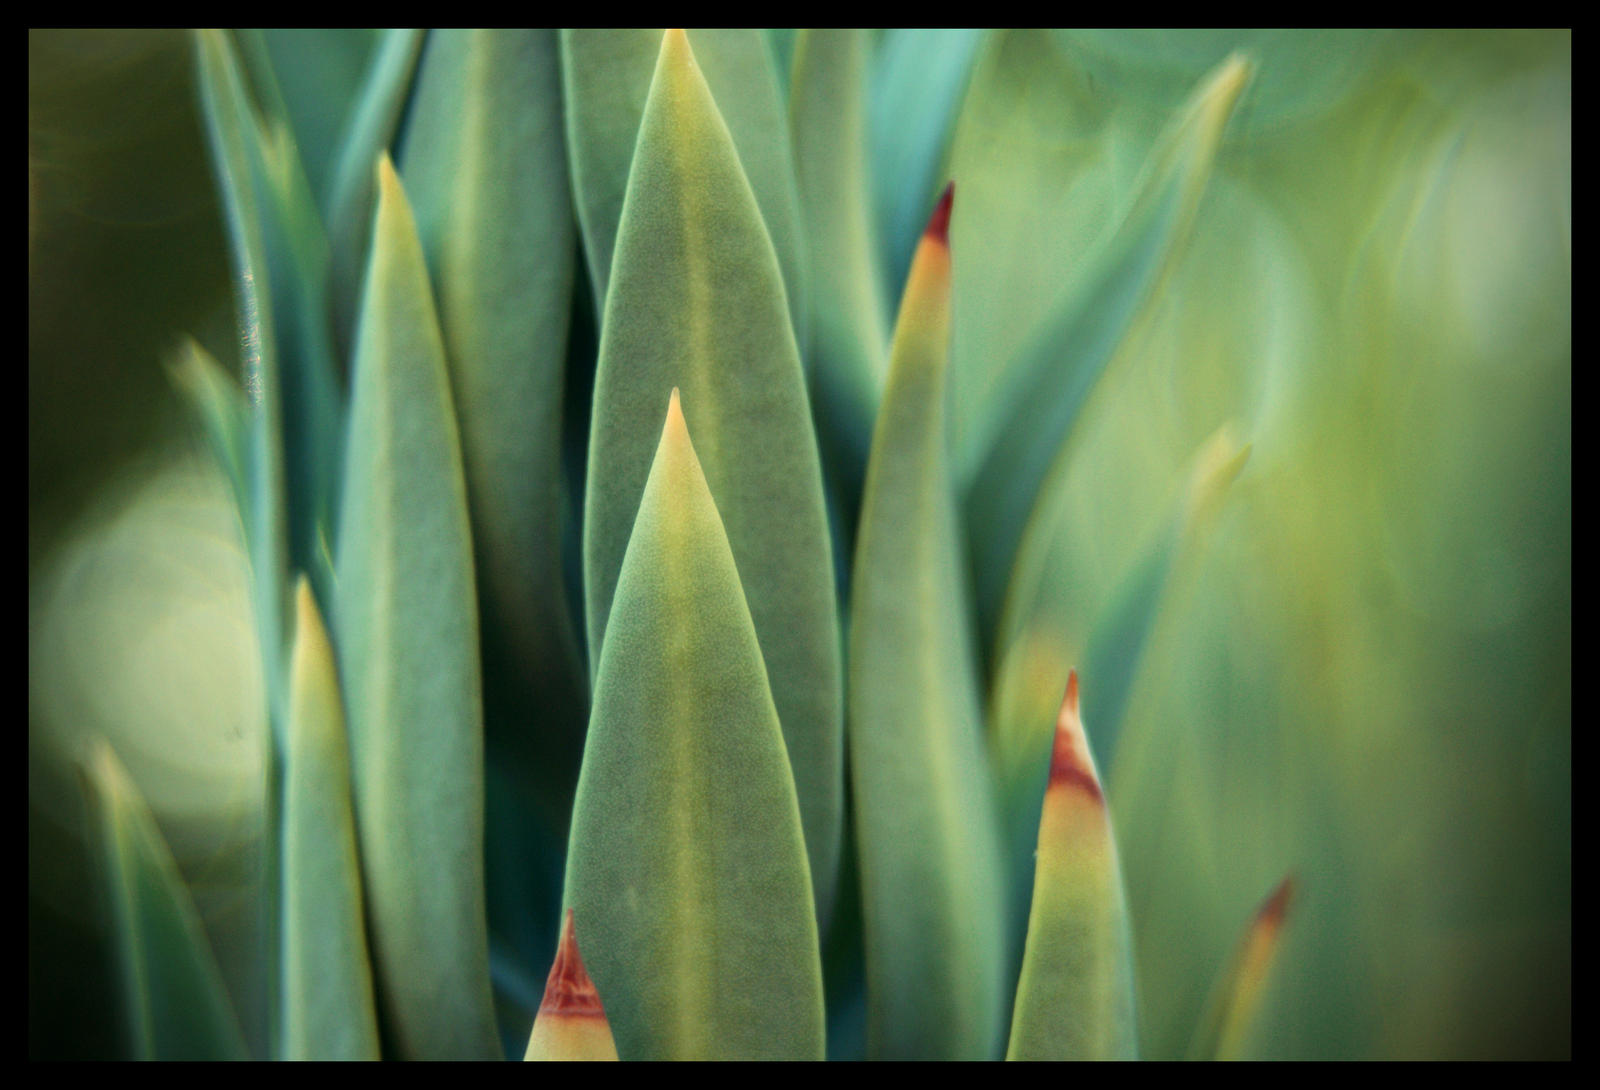 Cactus_08 by fuamnach